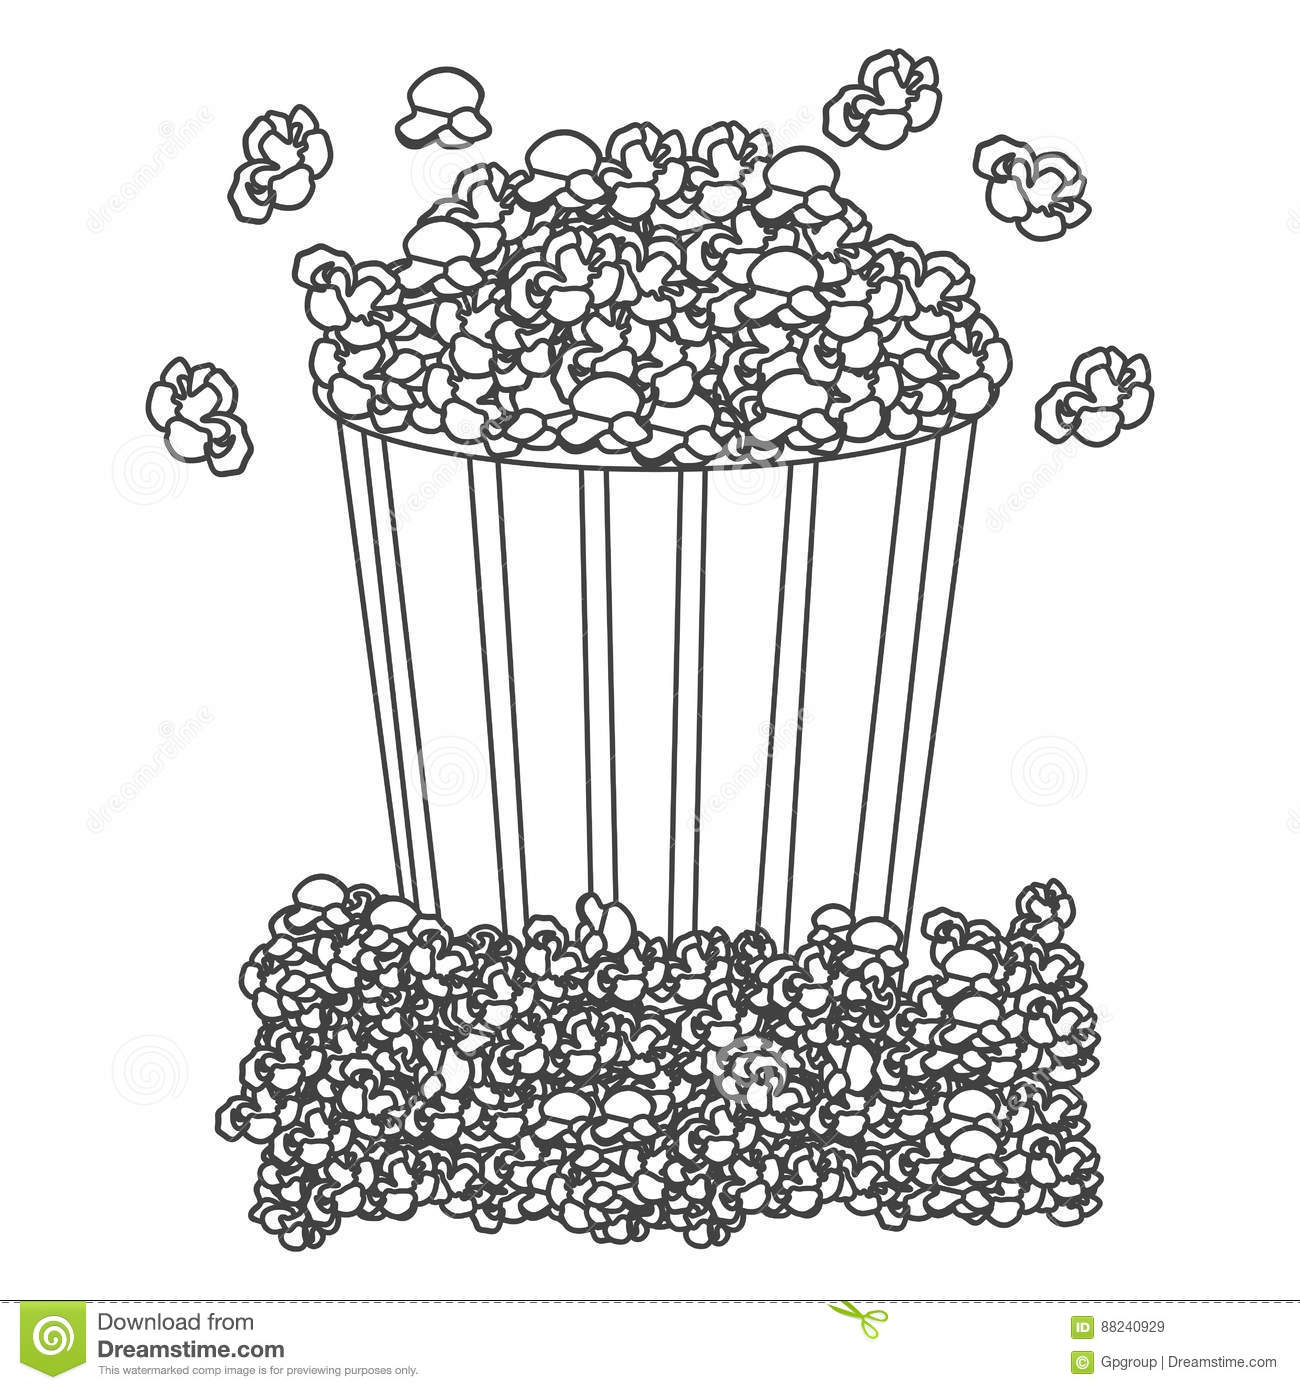 52 Best Popcorn Bags and Printables images | Popcorn theme, Printable  lables, Popcorn bags | 1390x1300